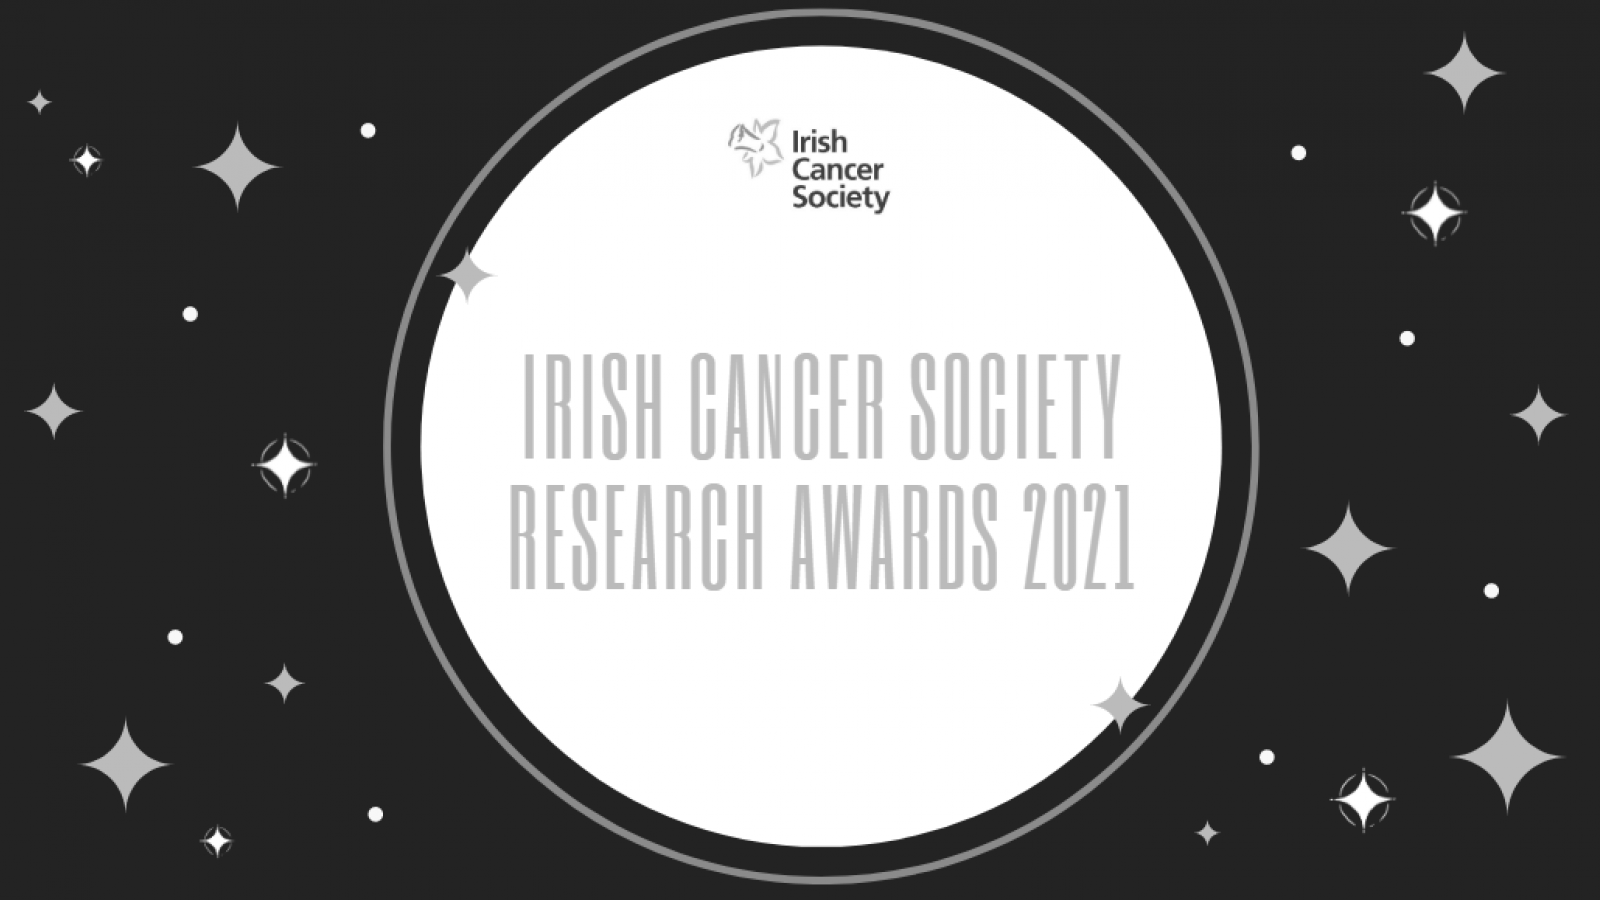 Research Awards 2021 2